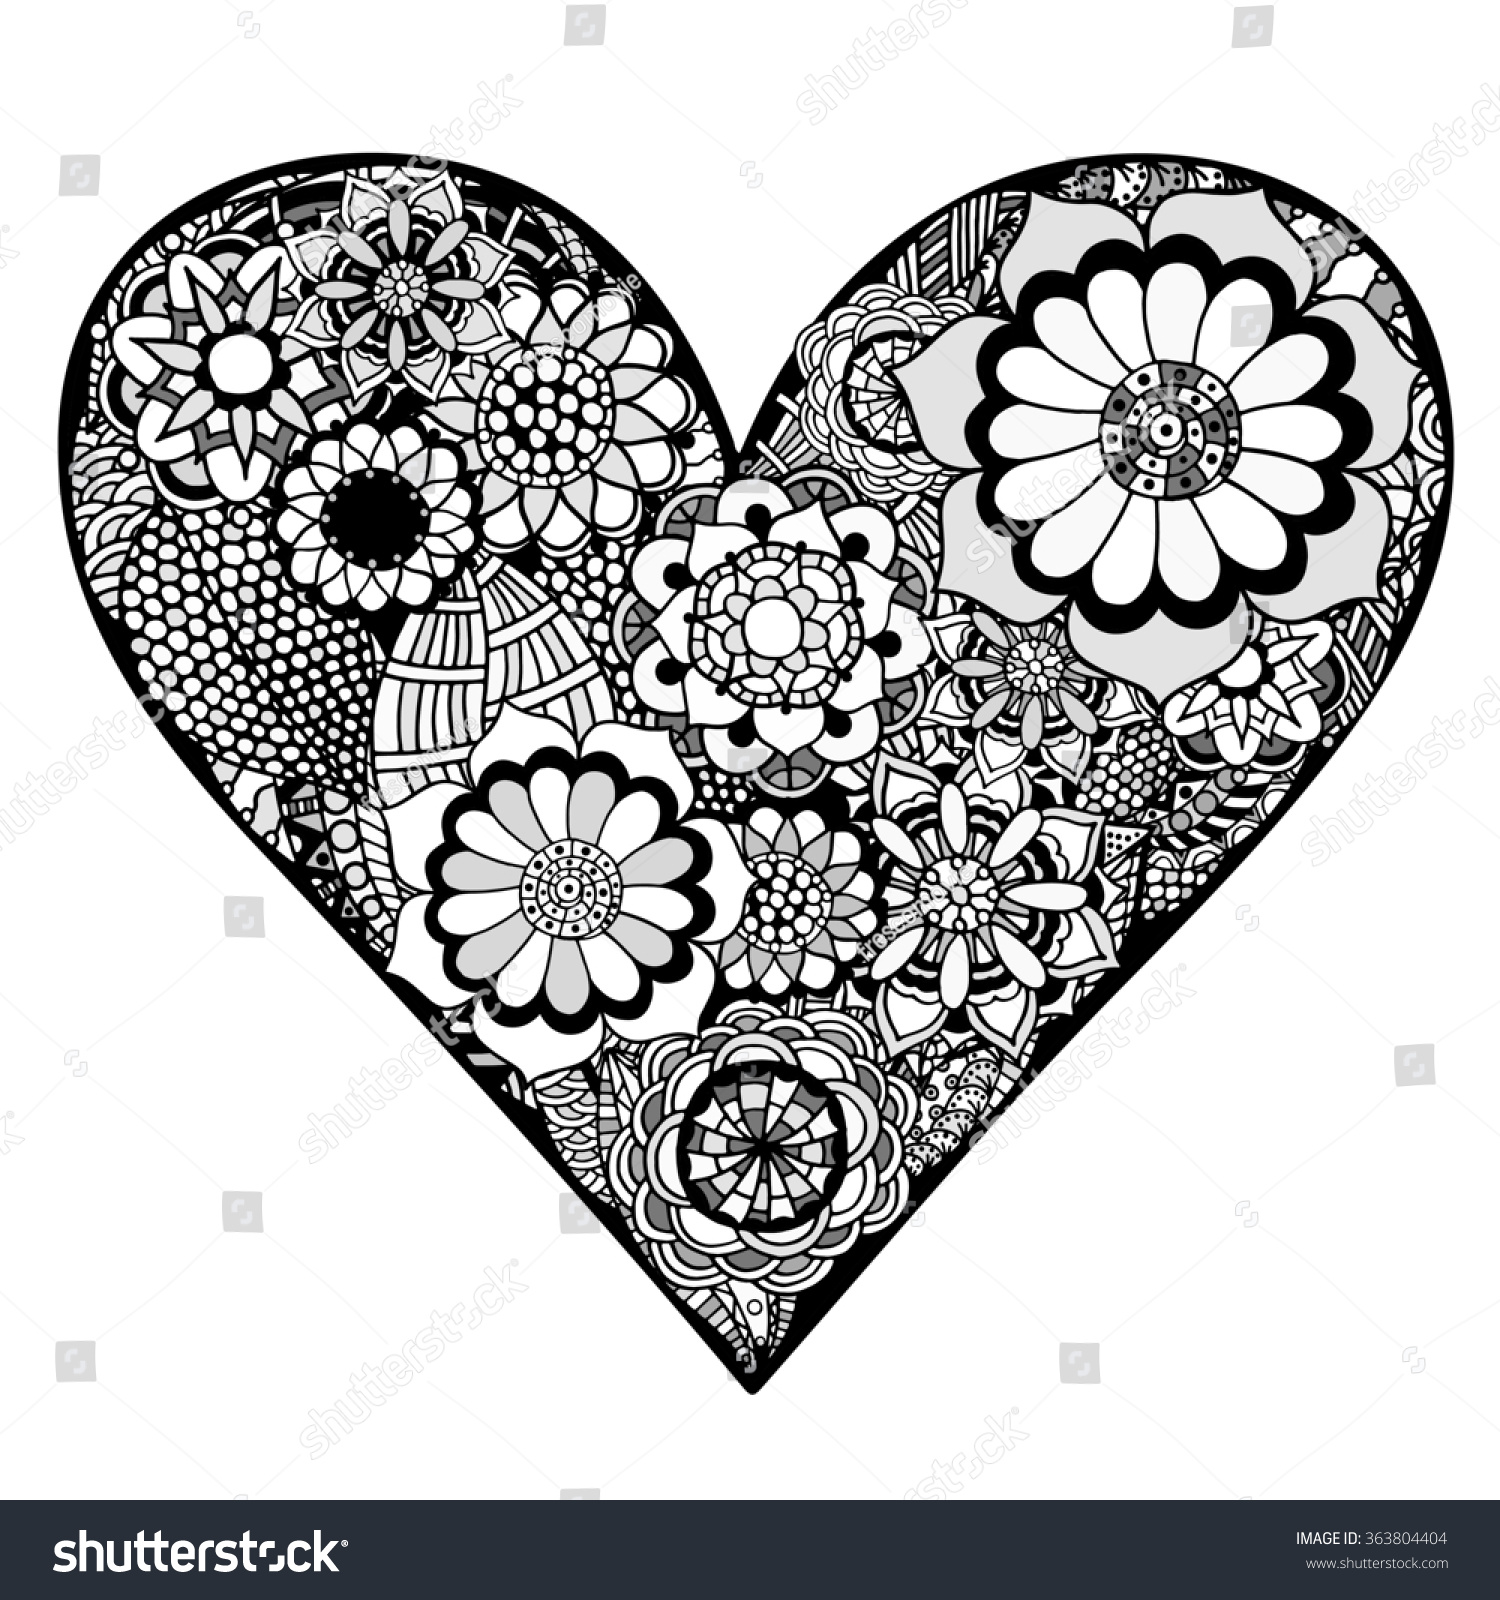 Hand Drawn Heart Flower Doodle Background Stock Illustration